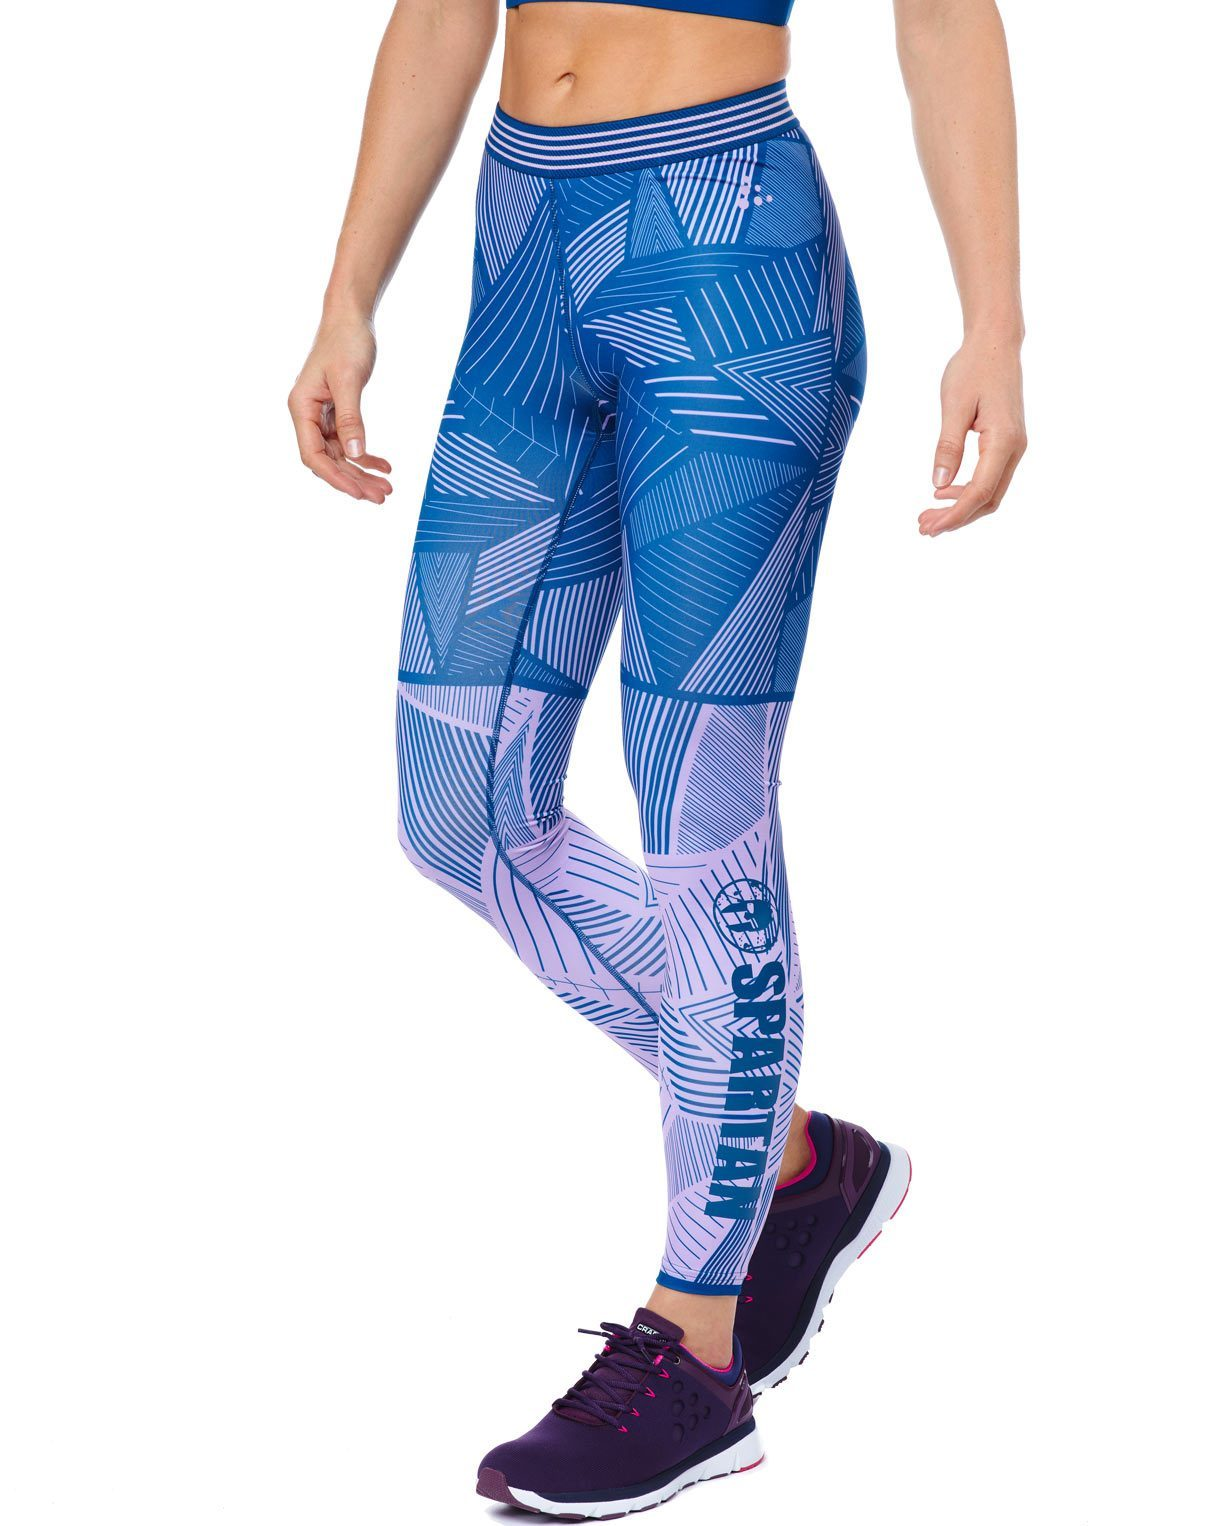 CRAFT SPARTAN By CRAFT Lux Tight - Women's Nox/Flare XS